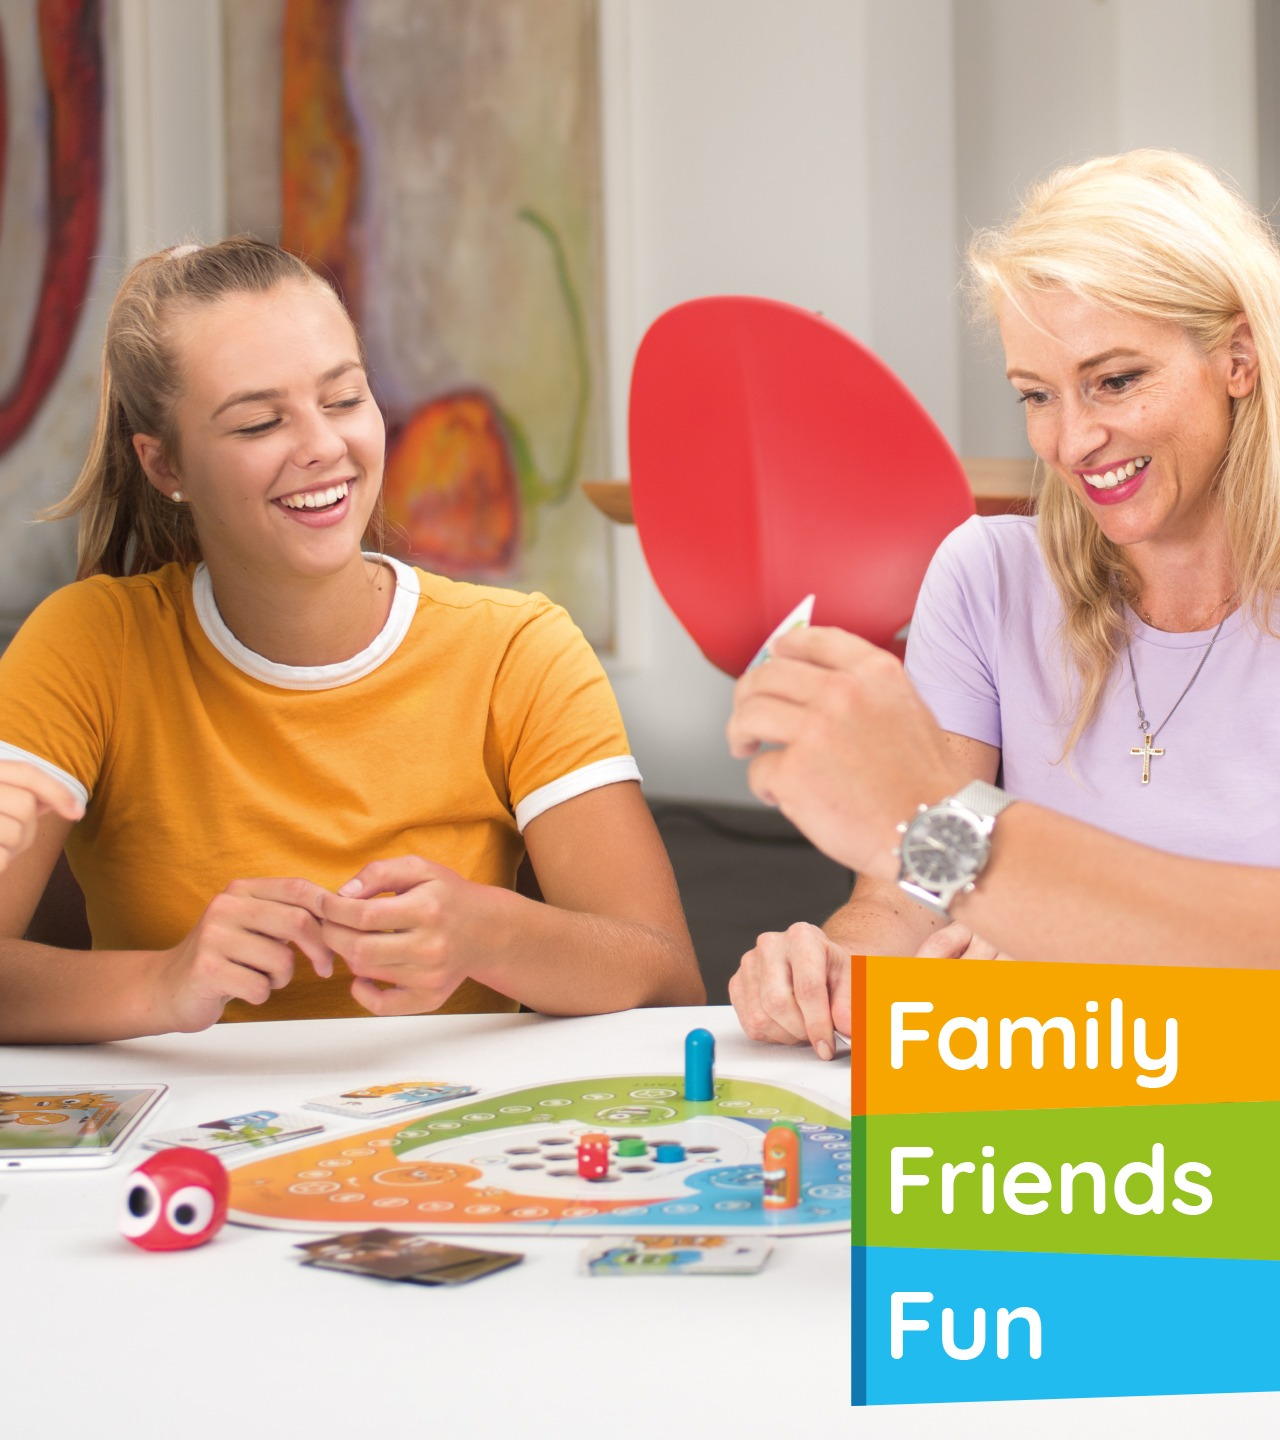 Interaction - The party game for family and friends